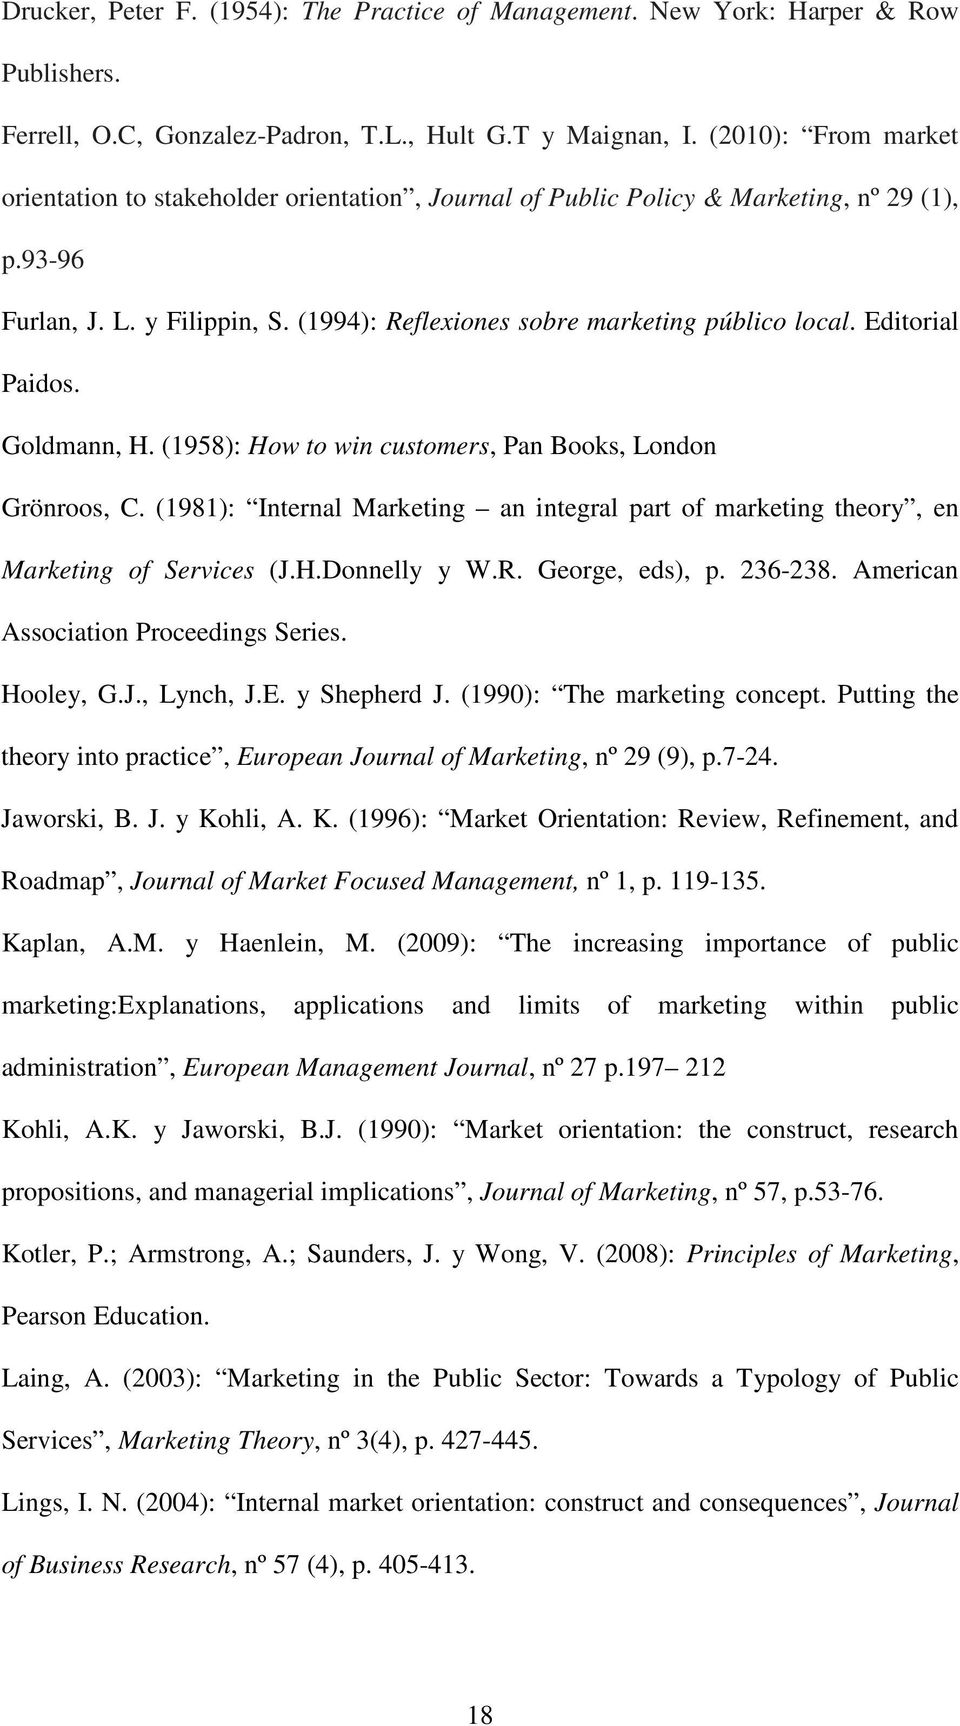 Editorial Paidos. Goldmann, H. (1958): How to win customers, Pan Books, London Grönroos, C. (1981): Internal Marketing an integral part of marketing theory, en Marketing of Services (J.H.Donnelly y W.